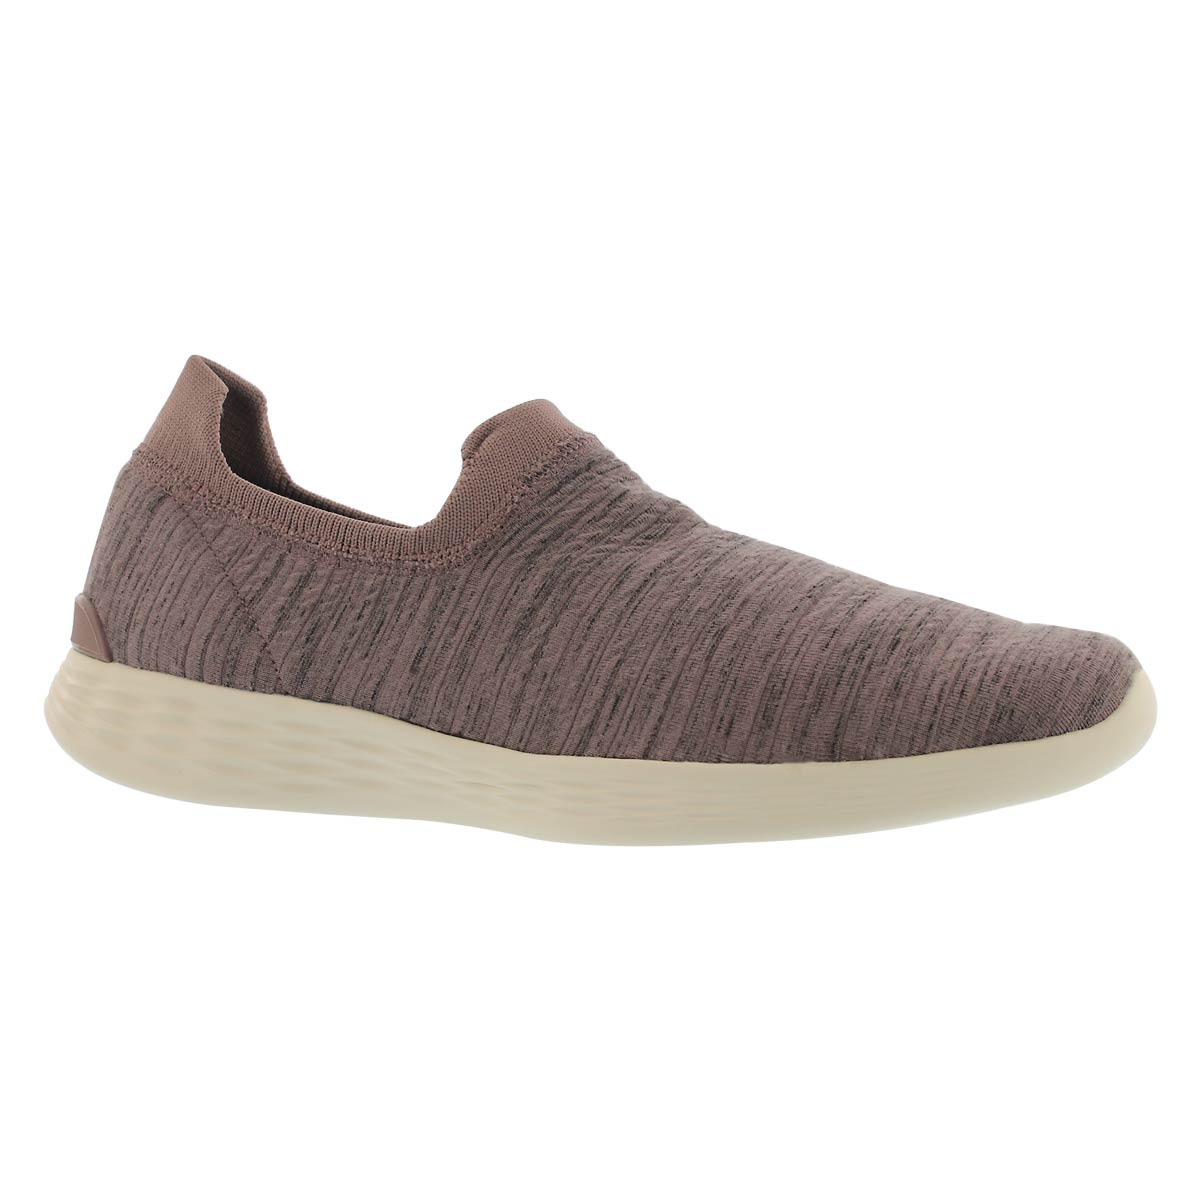 Lds You Define mauve slip on shoe